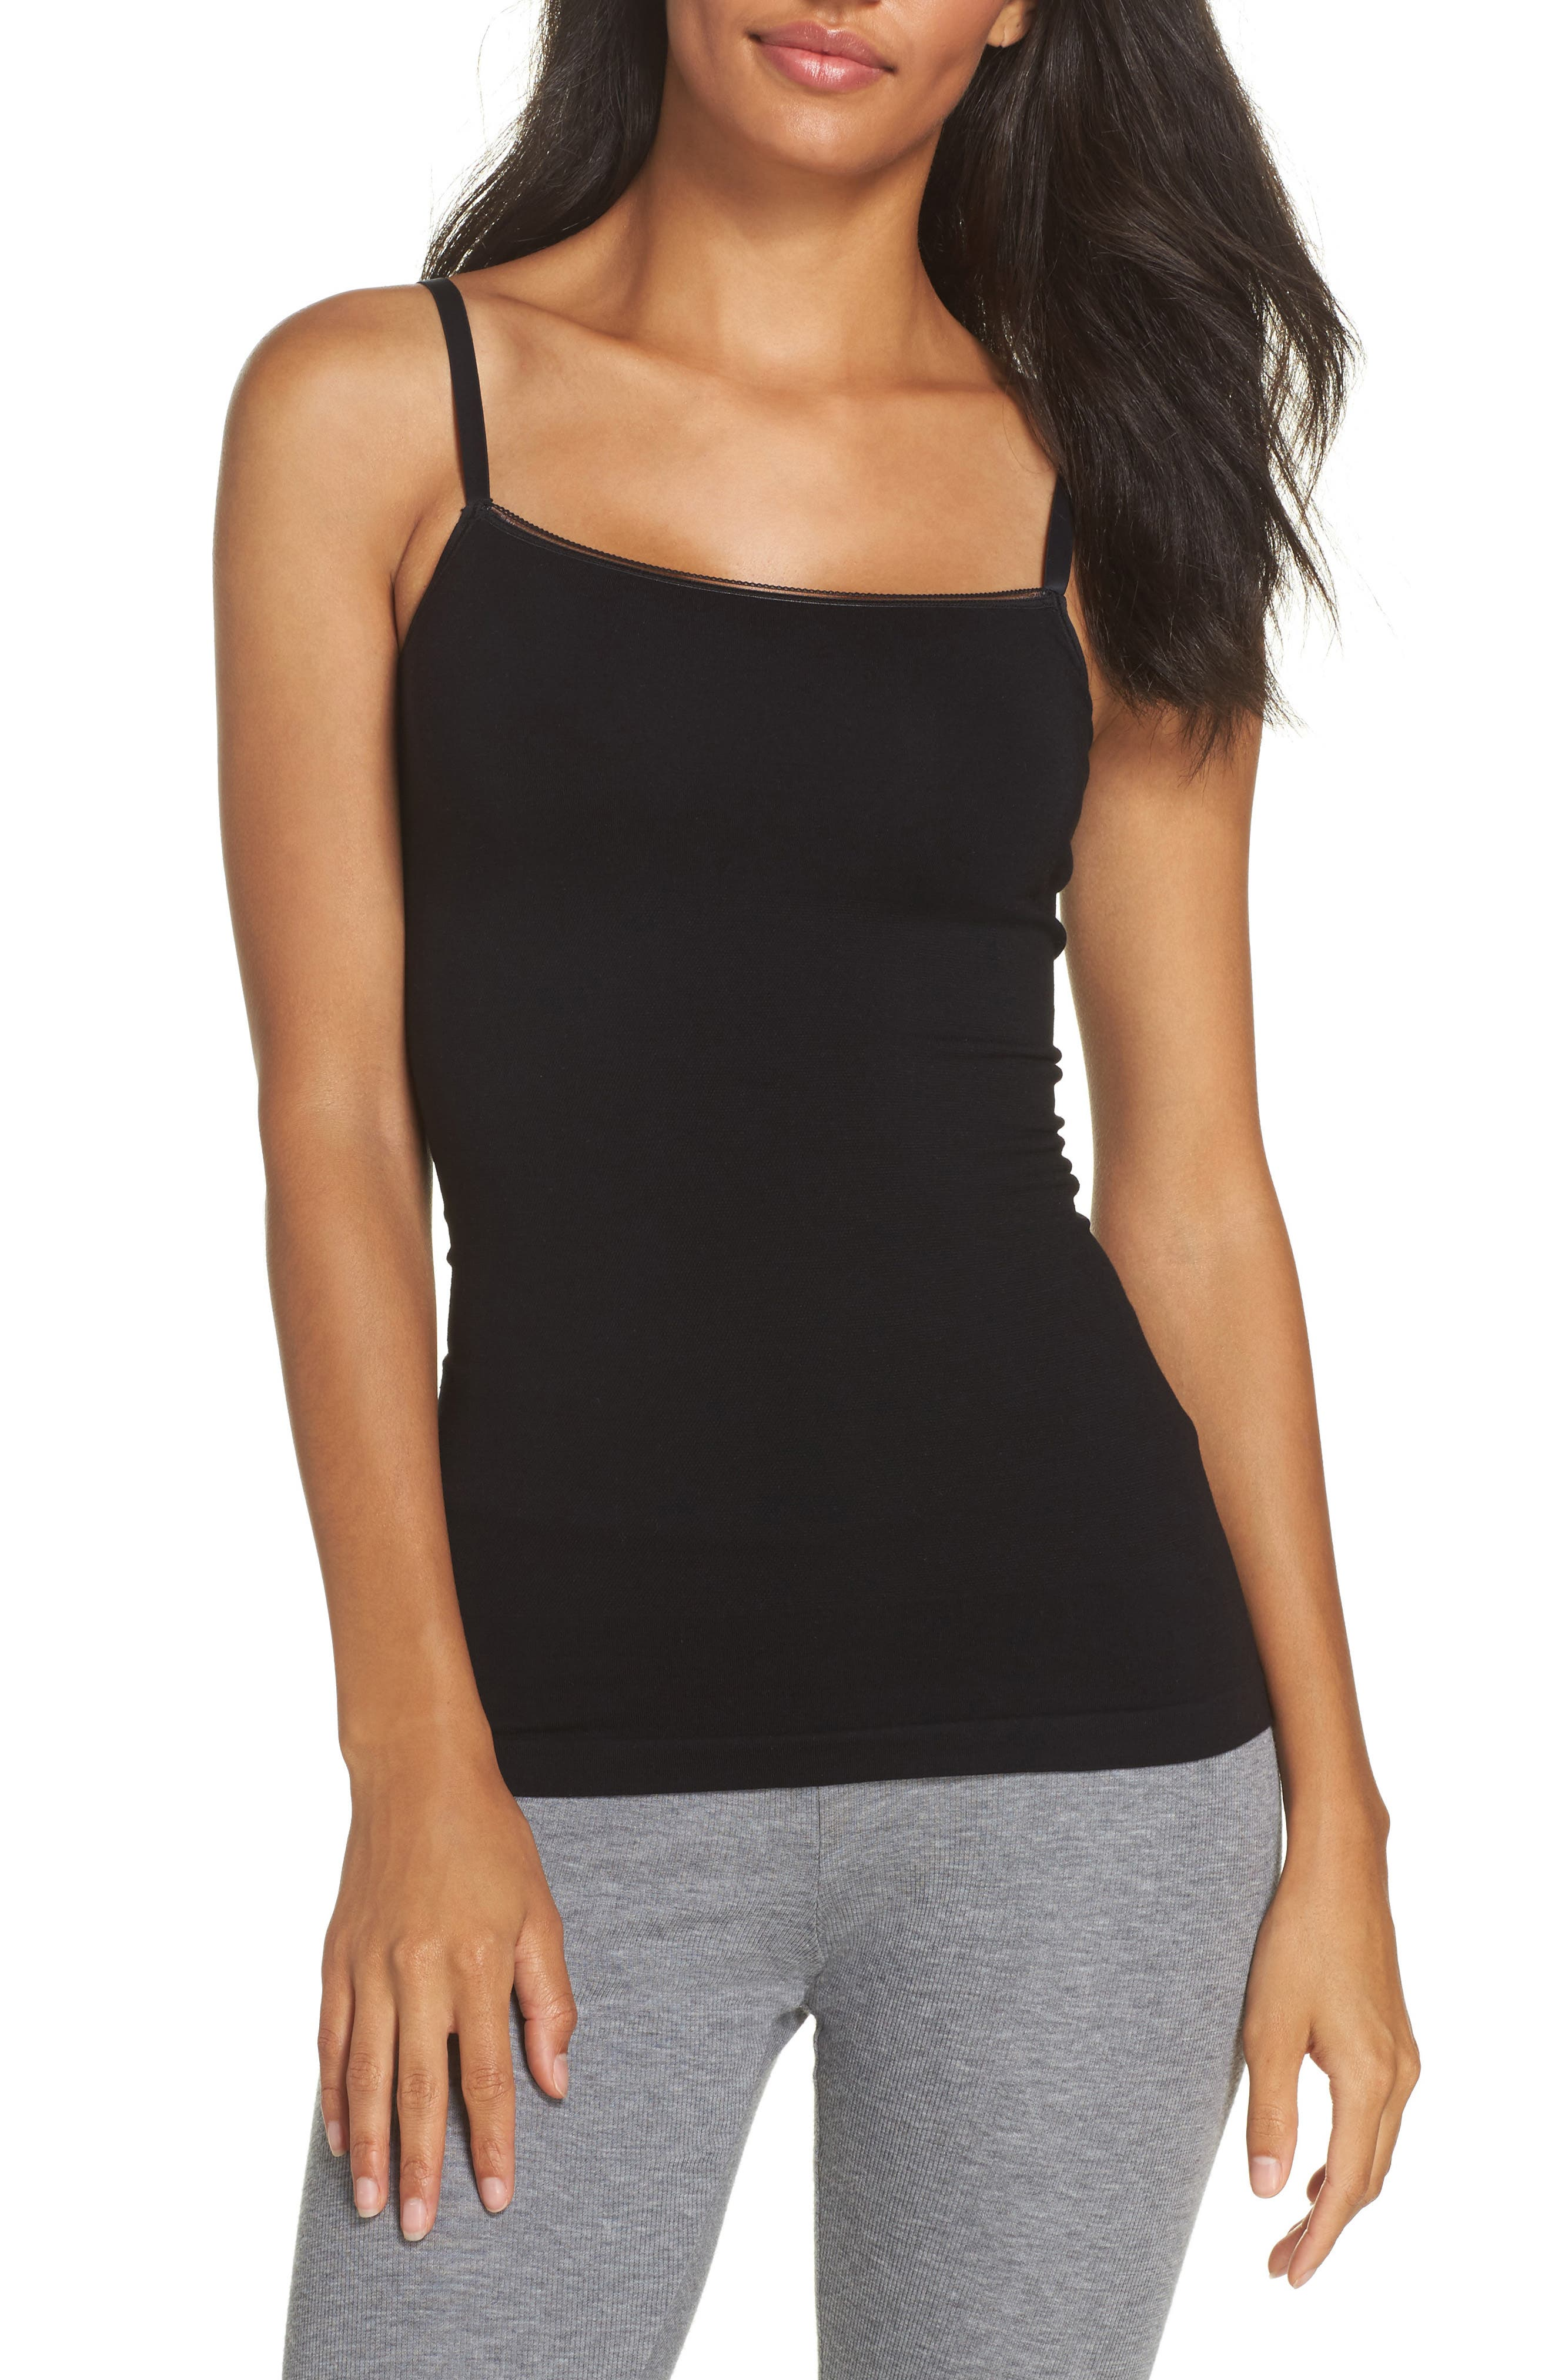 Main Image - Yummie Seamlessly Shaped Convertible Camisole (2 for $58)